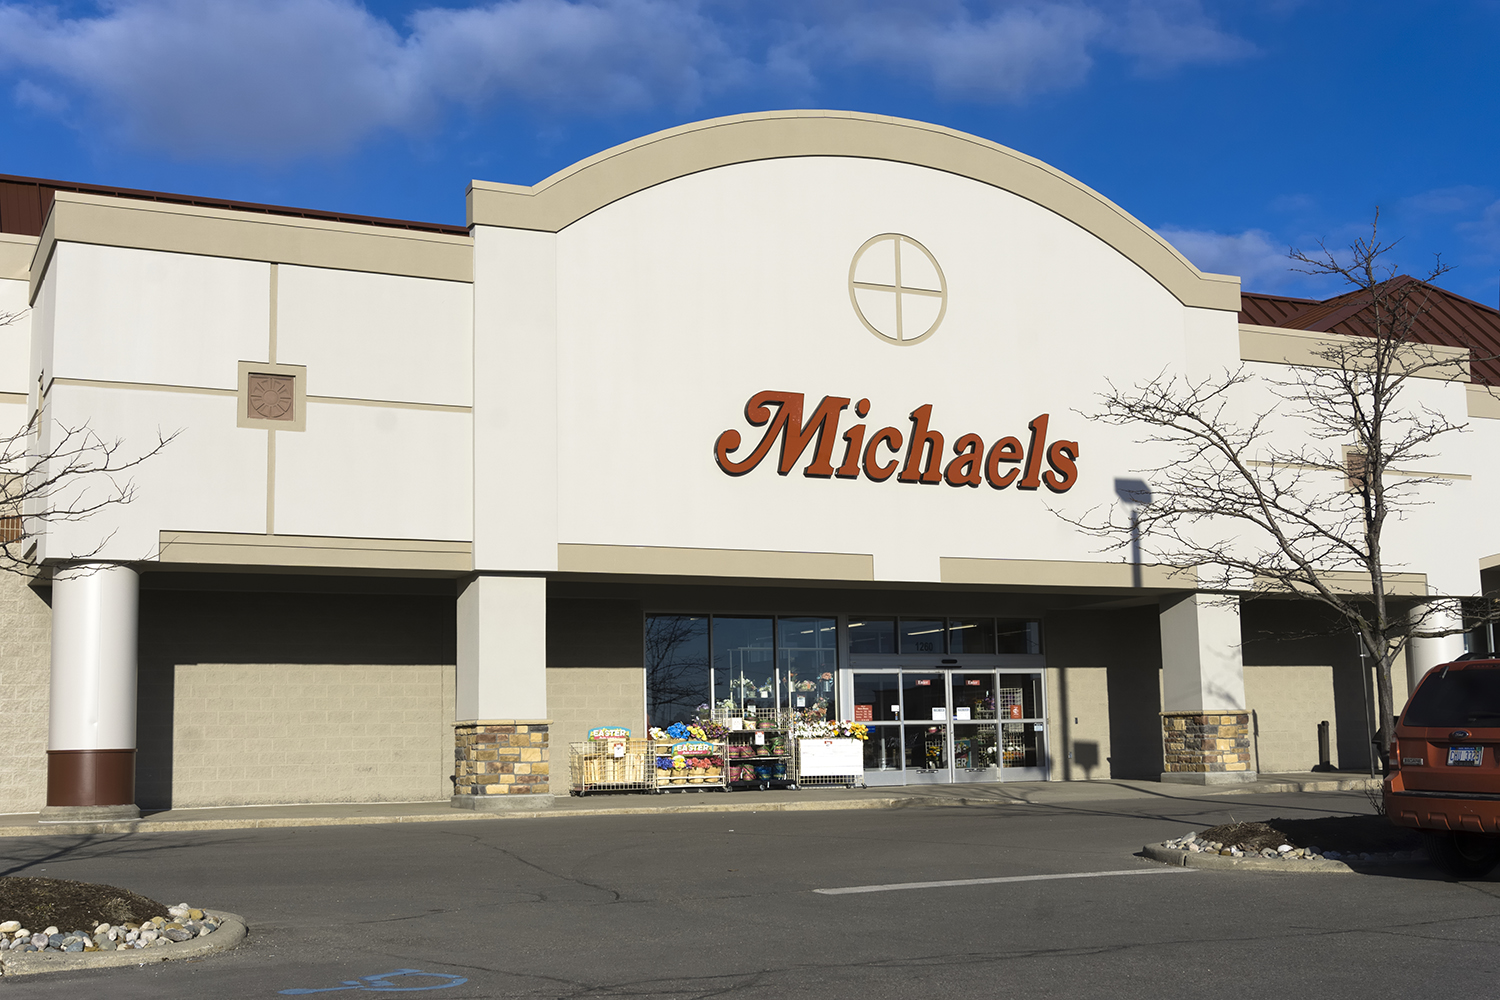 7 Secrets for Making the Most of Your NextShopping Trip to Michaels